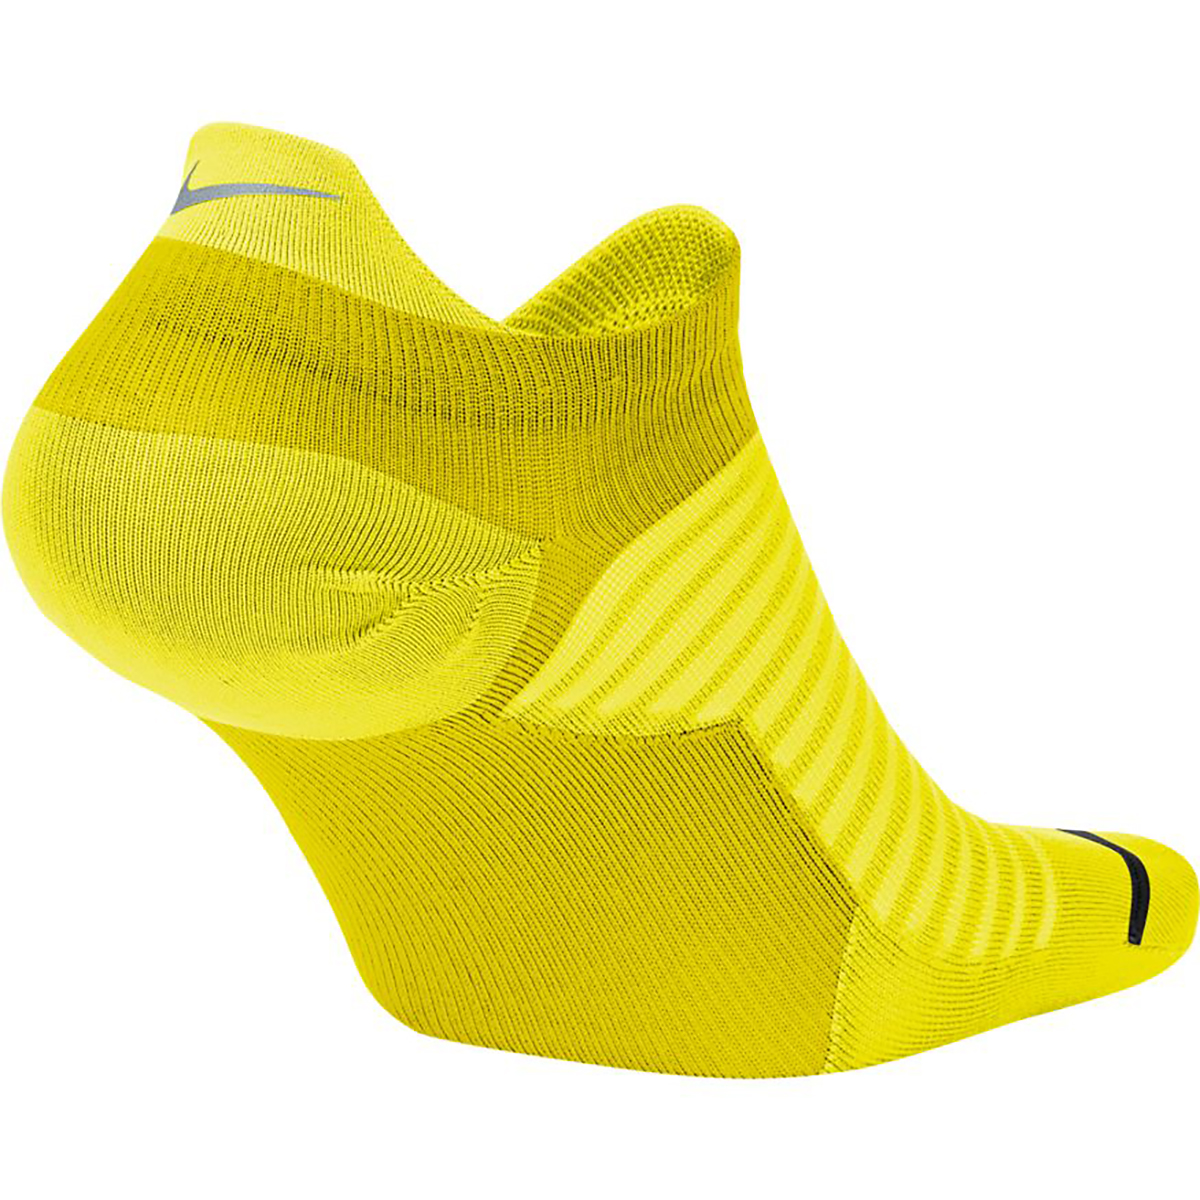 Nike Spark Lightweight No-Show Running Socks - Color: Neon Yellow - Size: 4/5.5, Neon Yellow, large, image 2